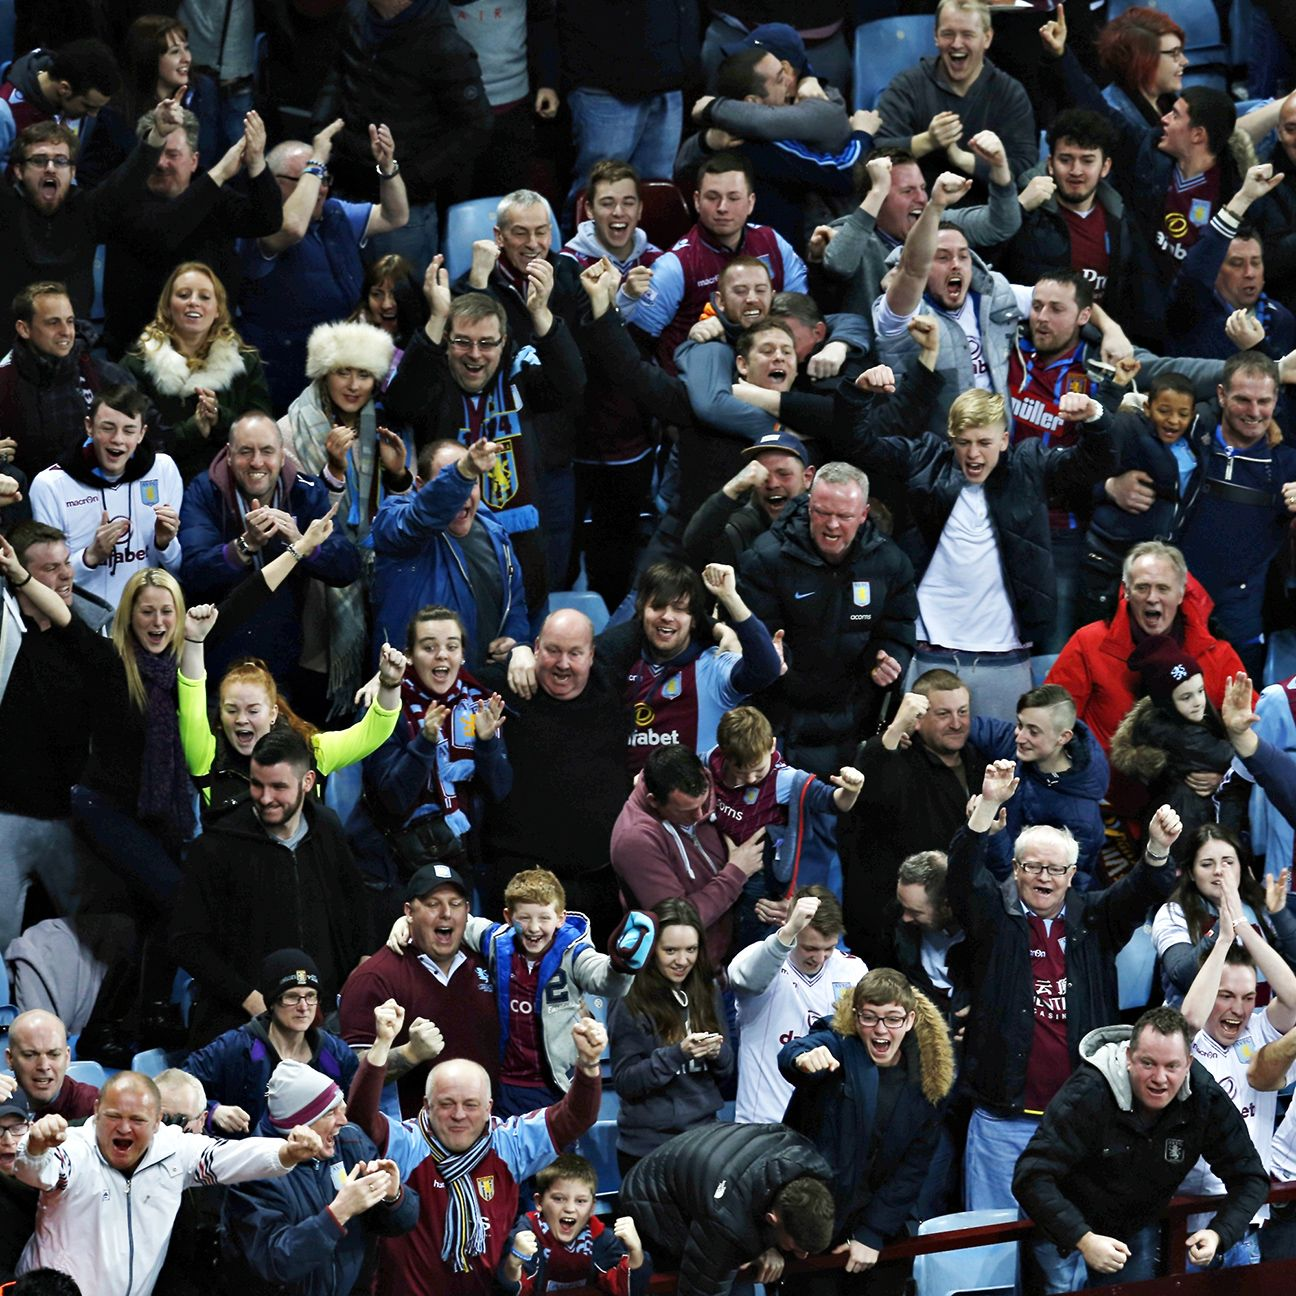 Aston Villa fans will be hoping to see their side clinch a spot in the FA Cup final for the first time since 2000.